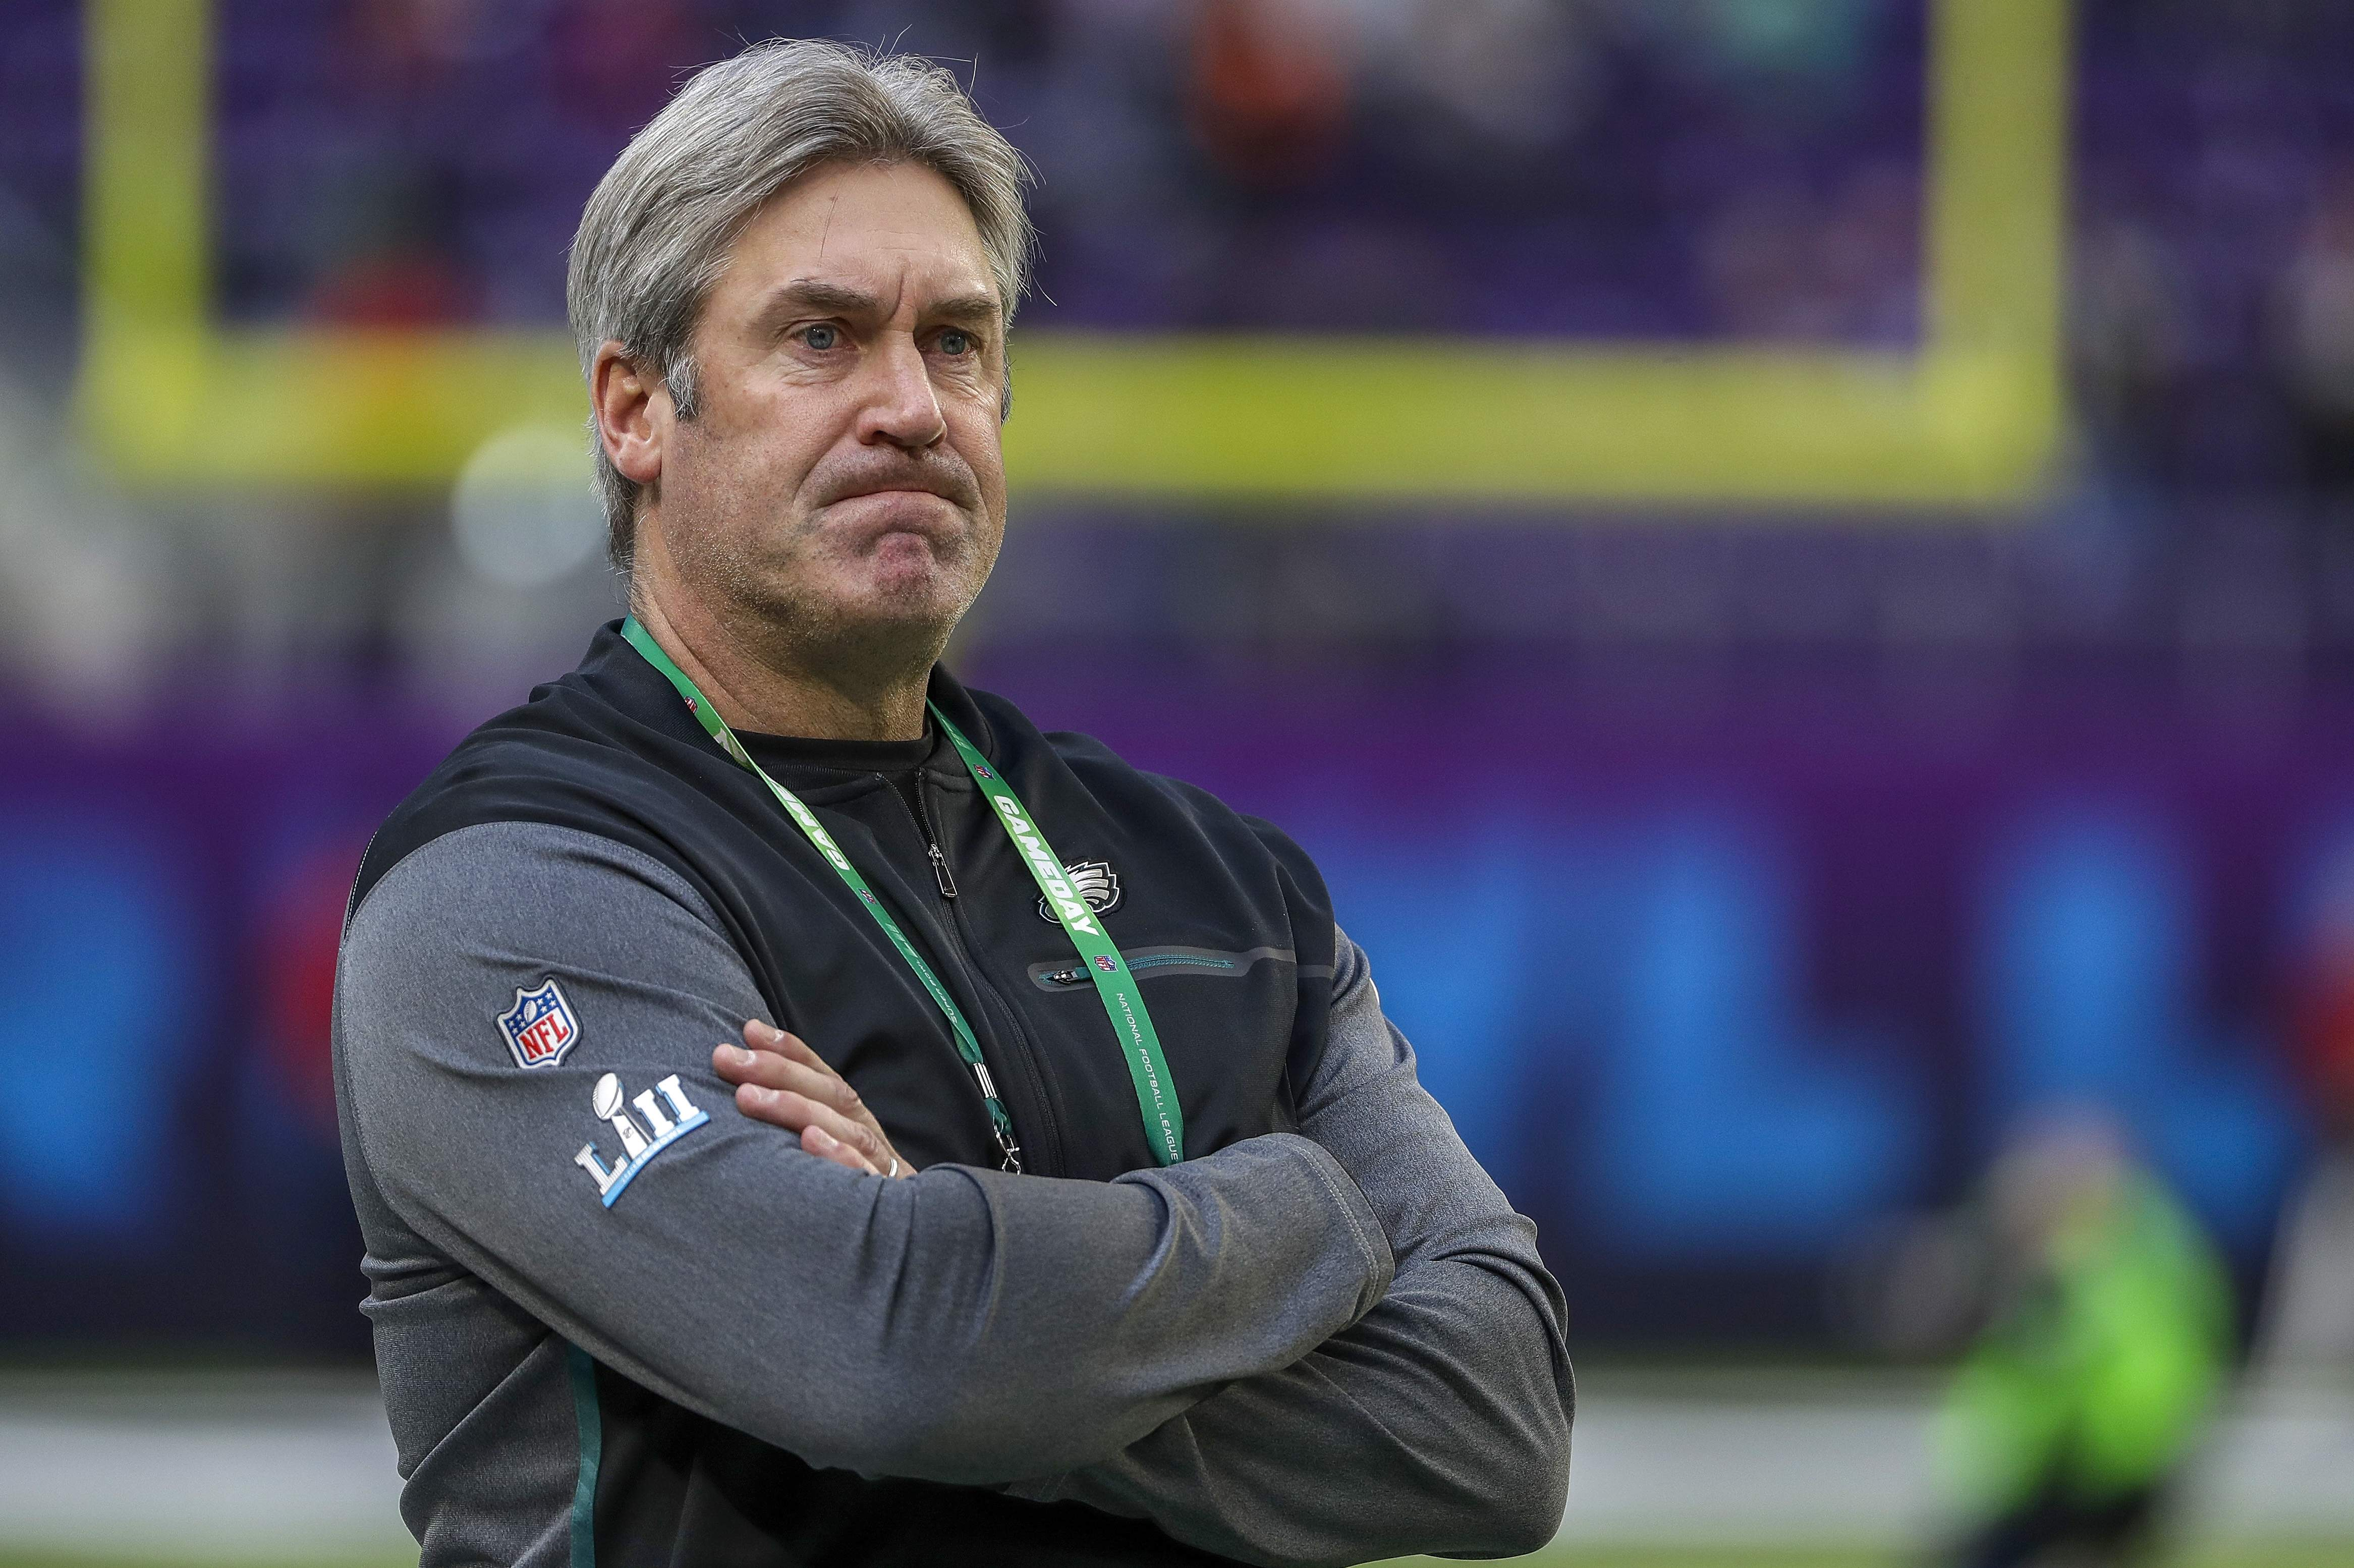 Philadelphia Eagles head coach Doug Pederson watches his team warm up before the NFL Super Bowl 52 football game against the New England Patriots Sunday, Feb. 4, 2018, in Minneapolis. (AP Photo/Matt Slocum)